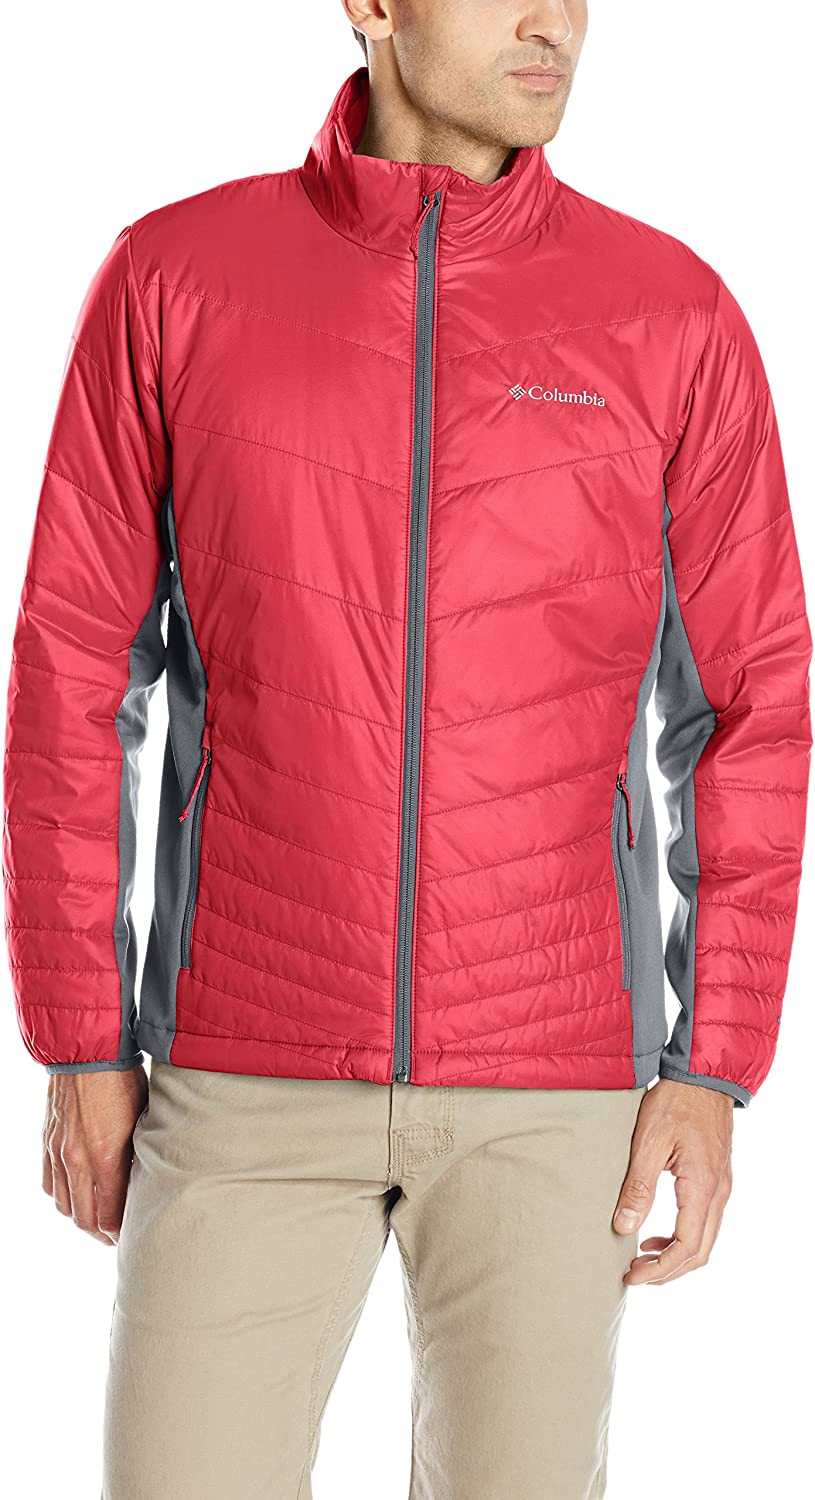 Columbia Sportswear Men's Mighty Light Hybrid Jacket